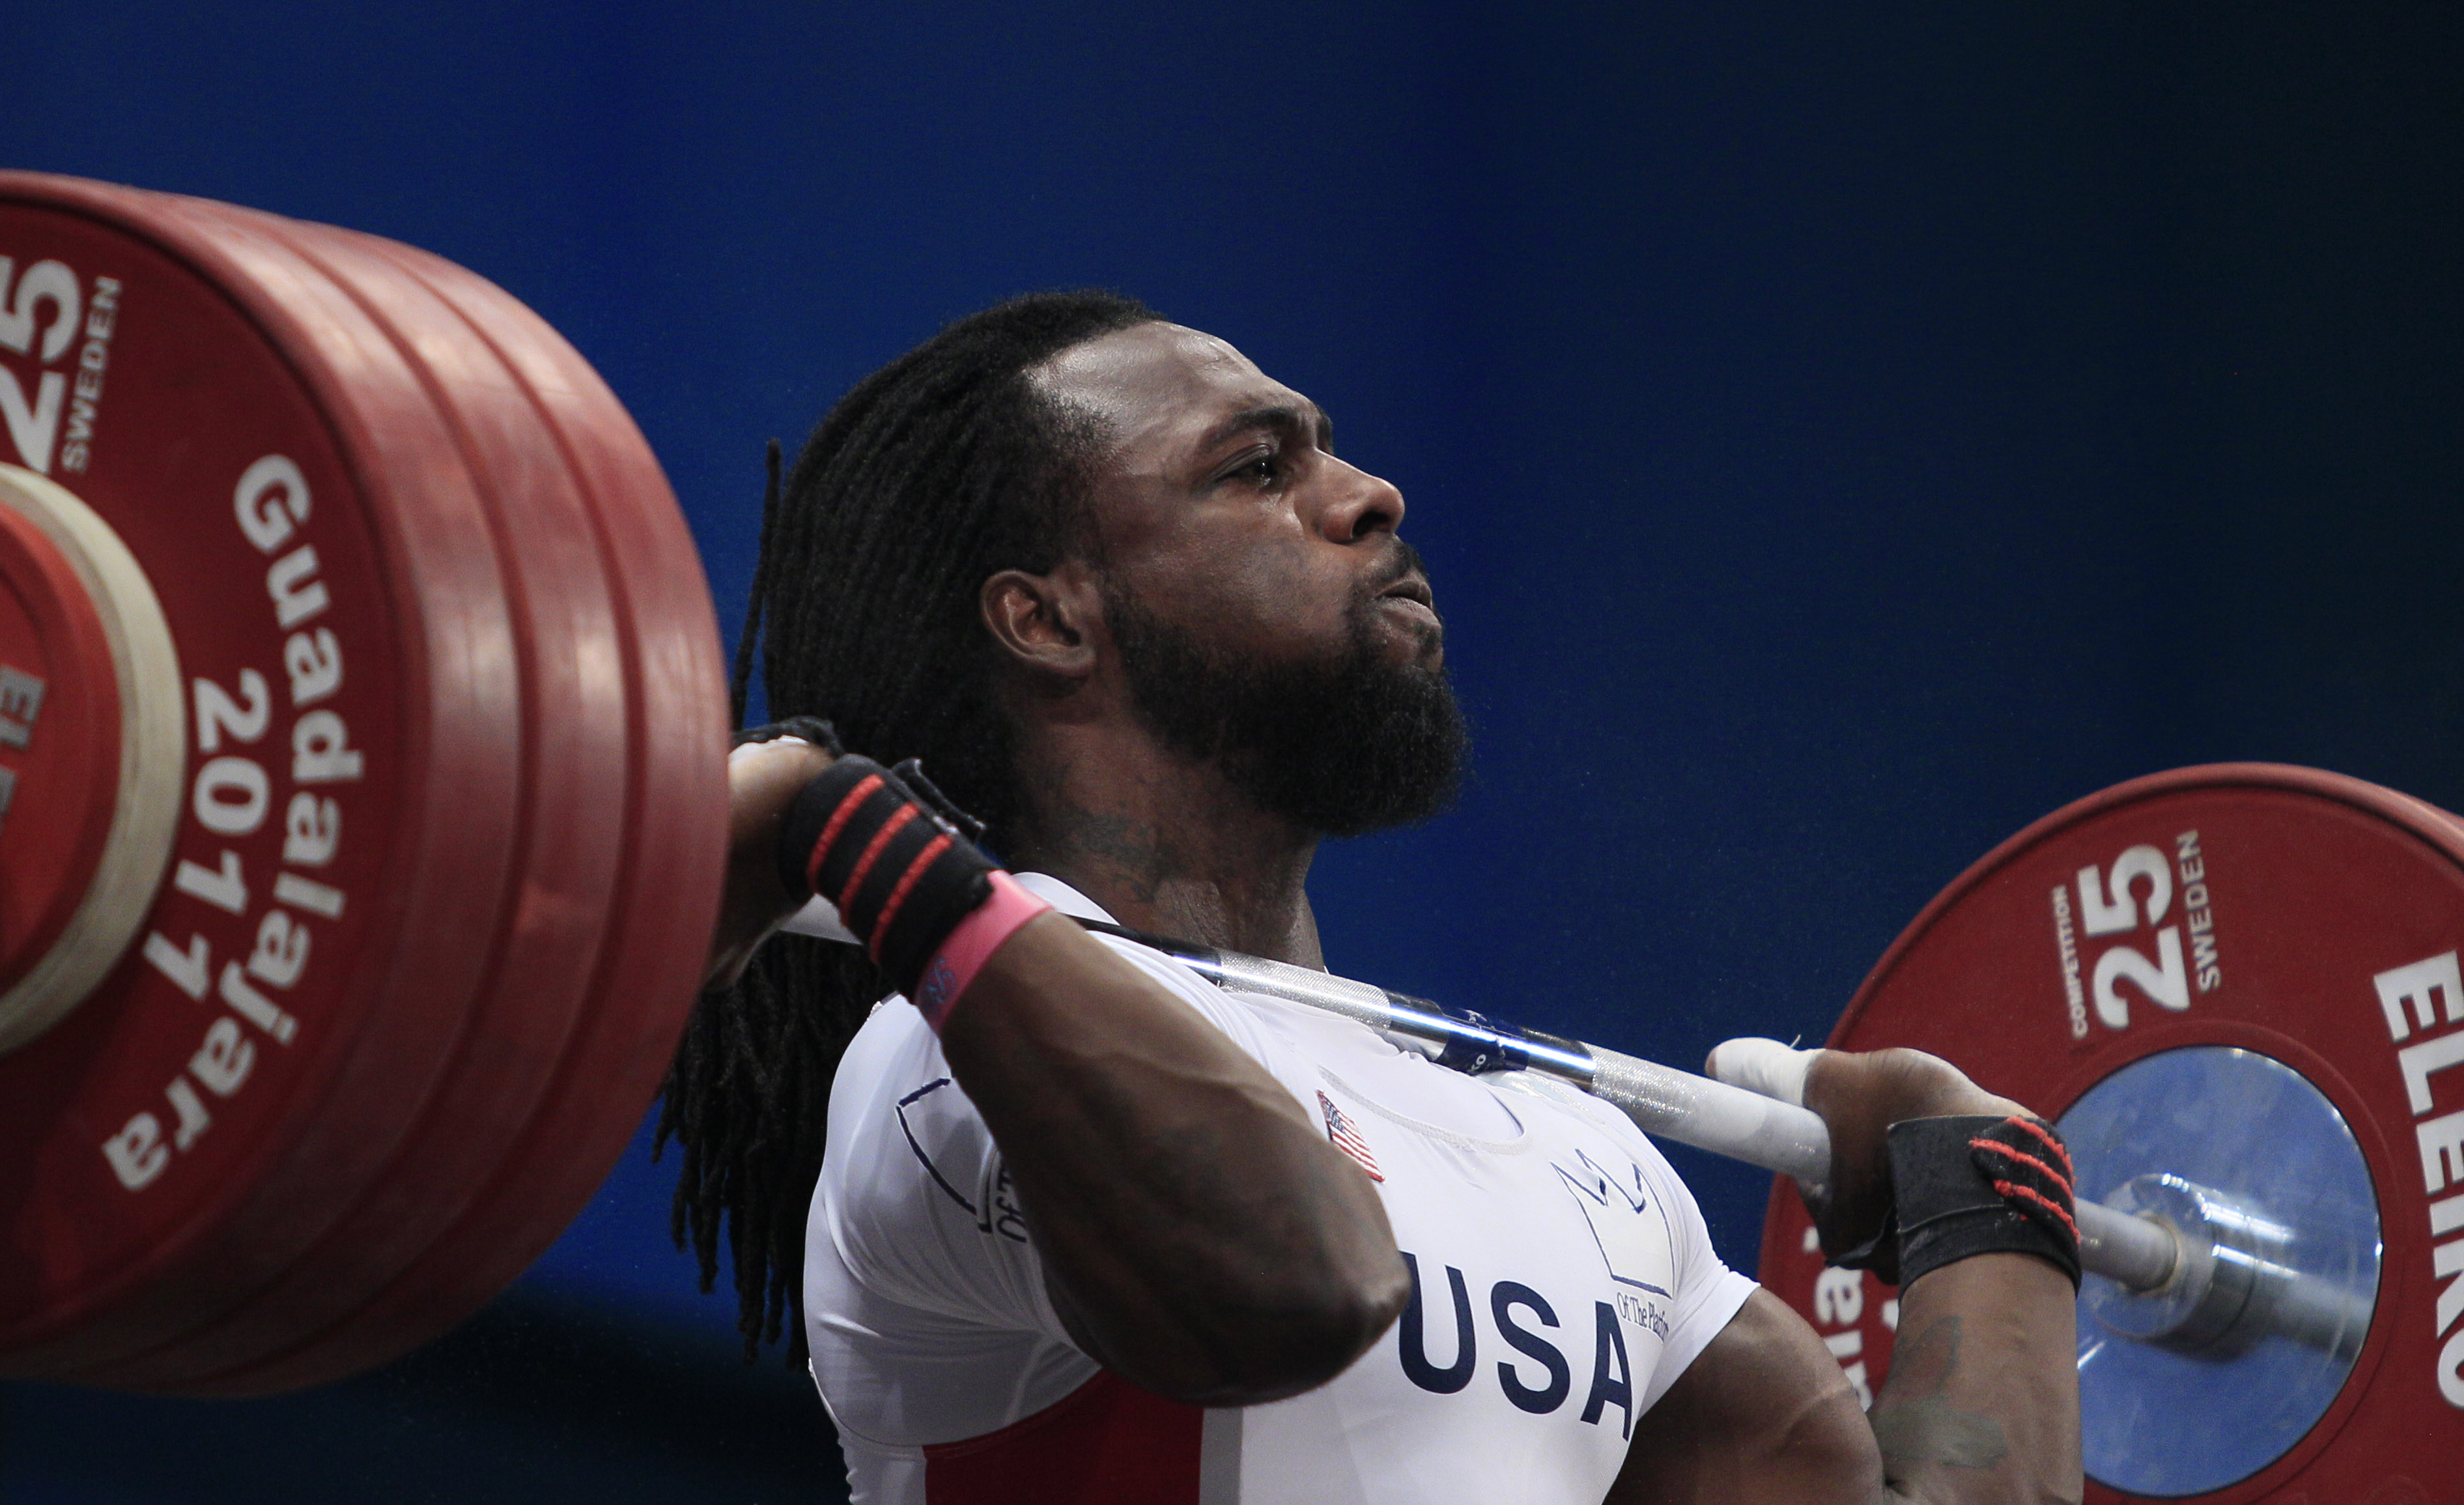 Kendrick Farris, from the United States, lifts 191kg during the men's 85 kg weightlifting event at the Pan American Games in Guadalajara, Mexico, Tuesday, Oct. 25, 2011. Farris won the bronze medal. (AP Photo/Ariana Cubillos)